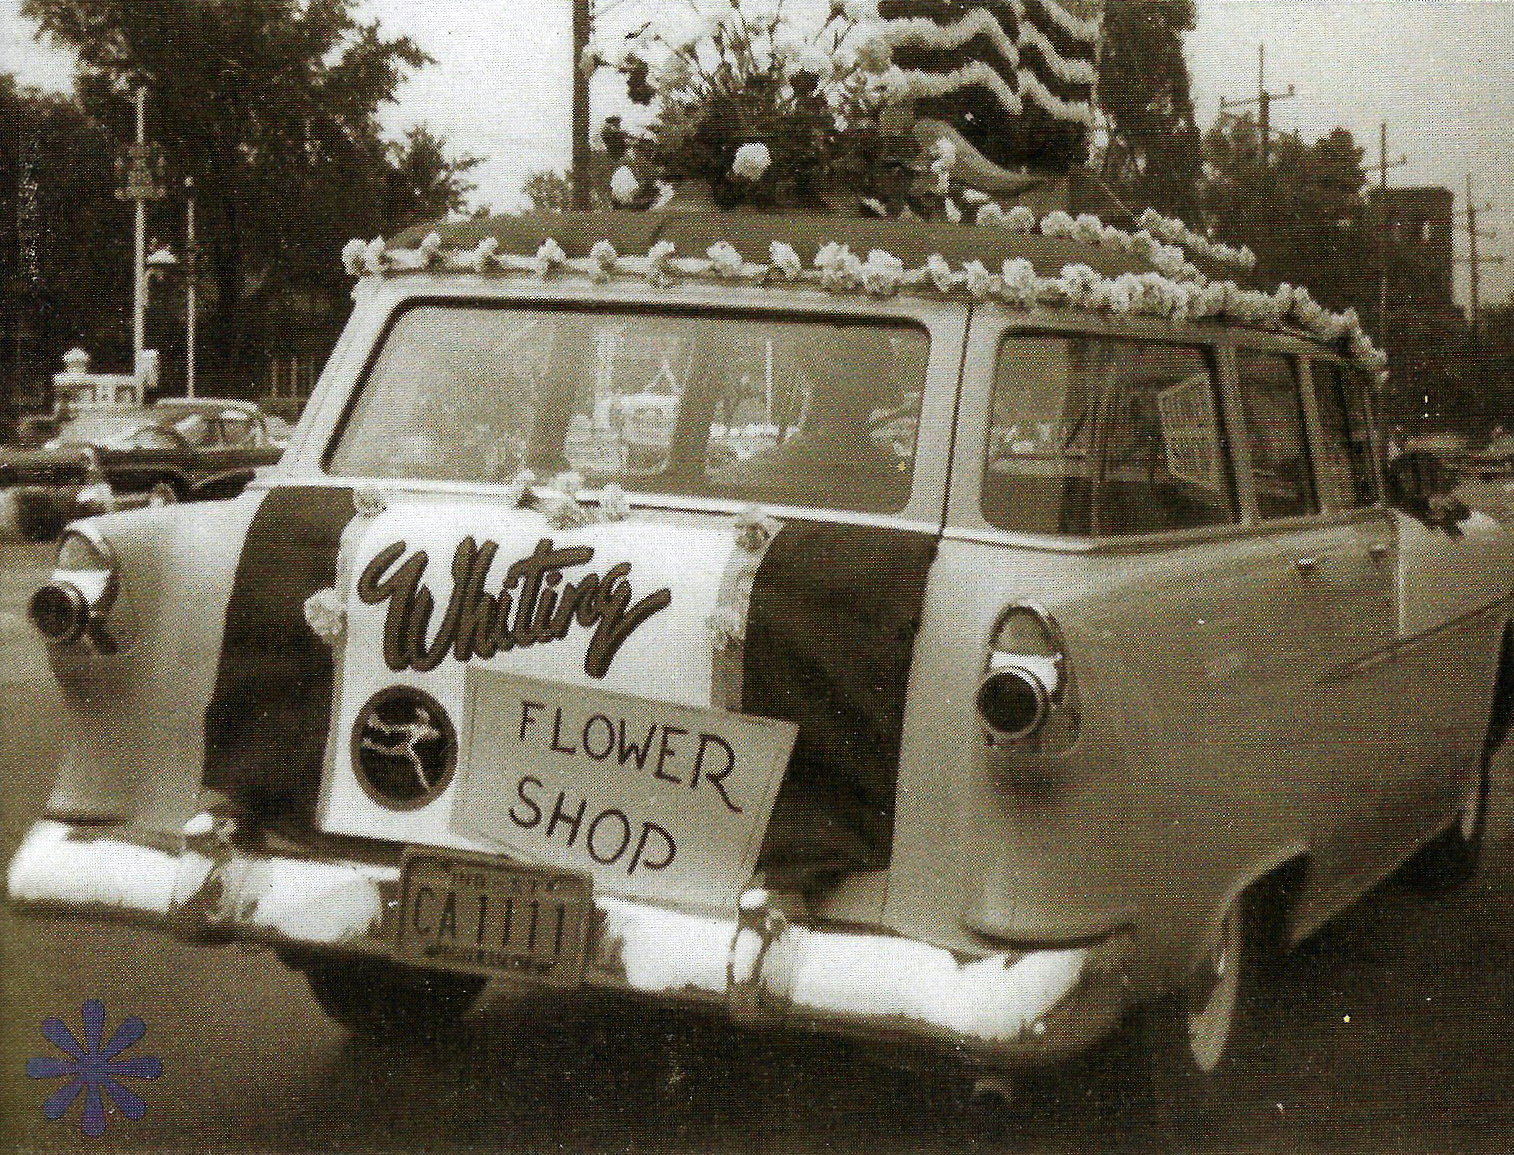 The Whiting Flower Shop is one of the city's oldest businesses. It began in the first decade of the 20th century when Louis Klemm sold flowers out of a horse-drawn cart. It moved to 119th Street, and during the Depression it sold bread and penny candy to help make ends meet. The photo above is from 1957